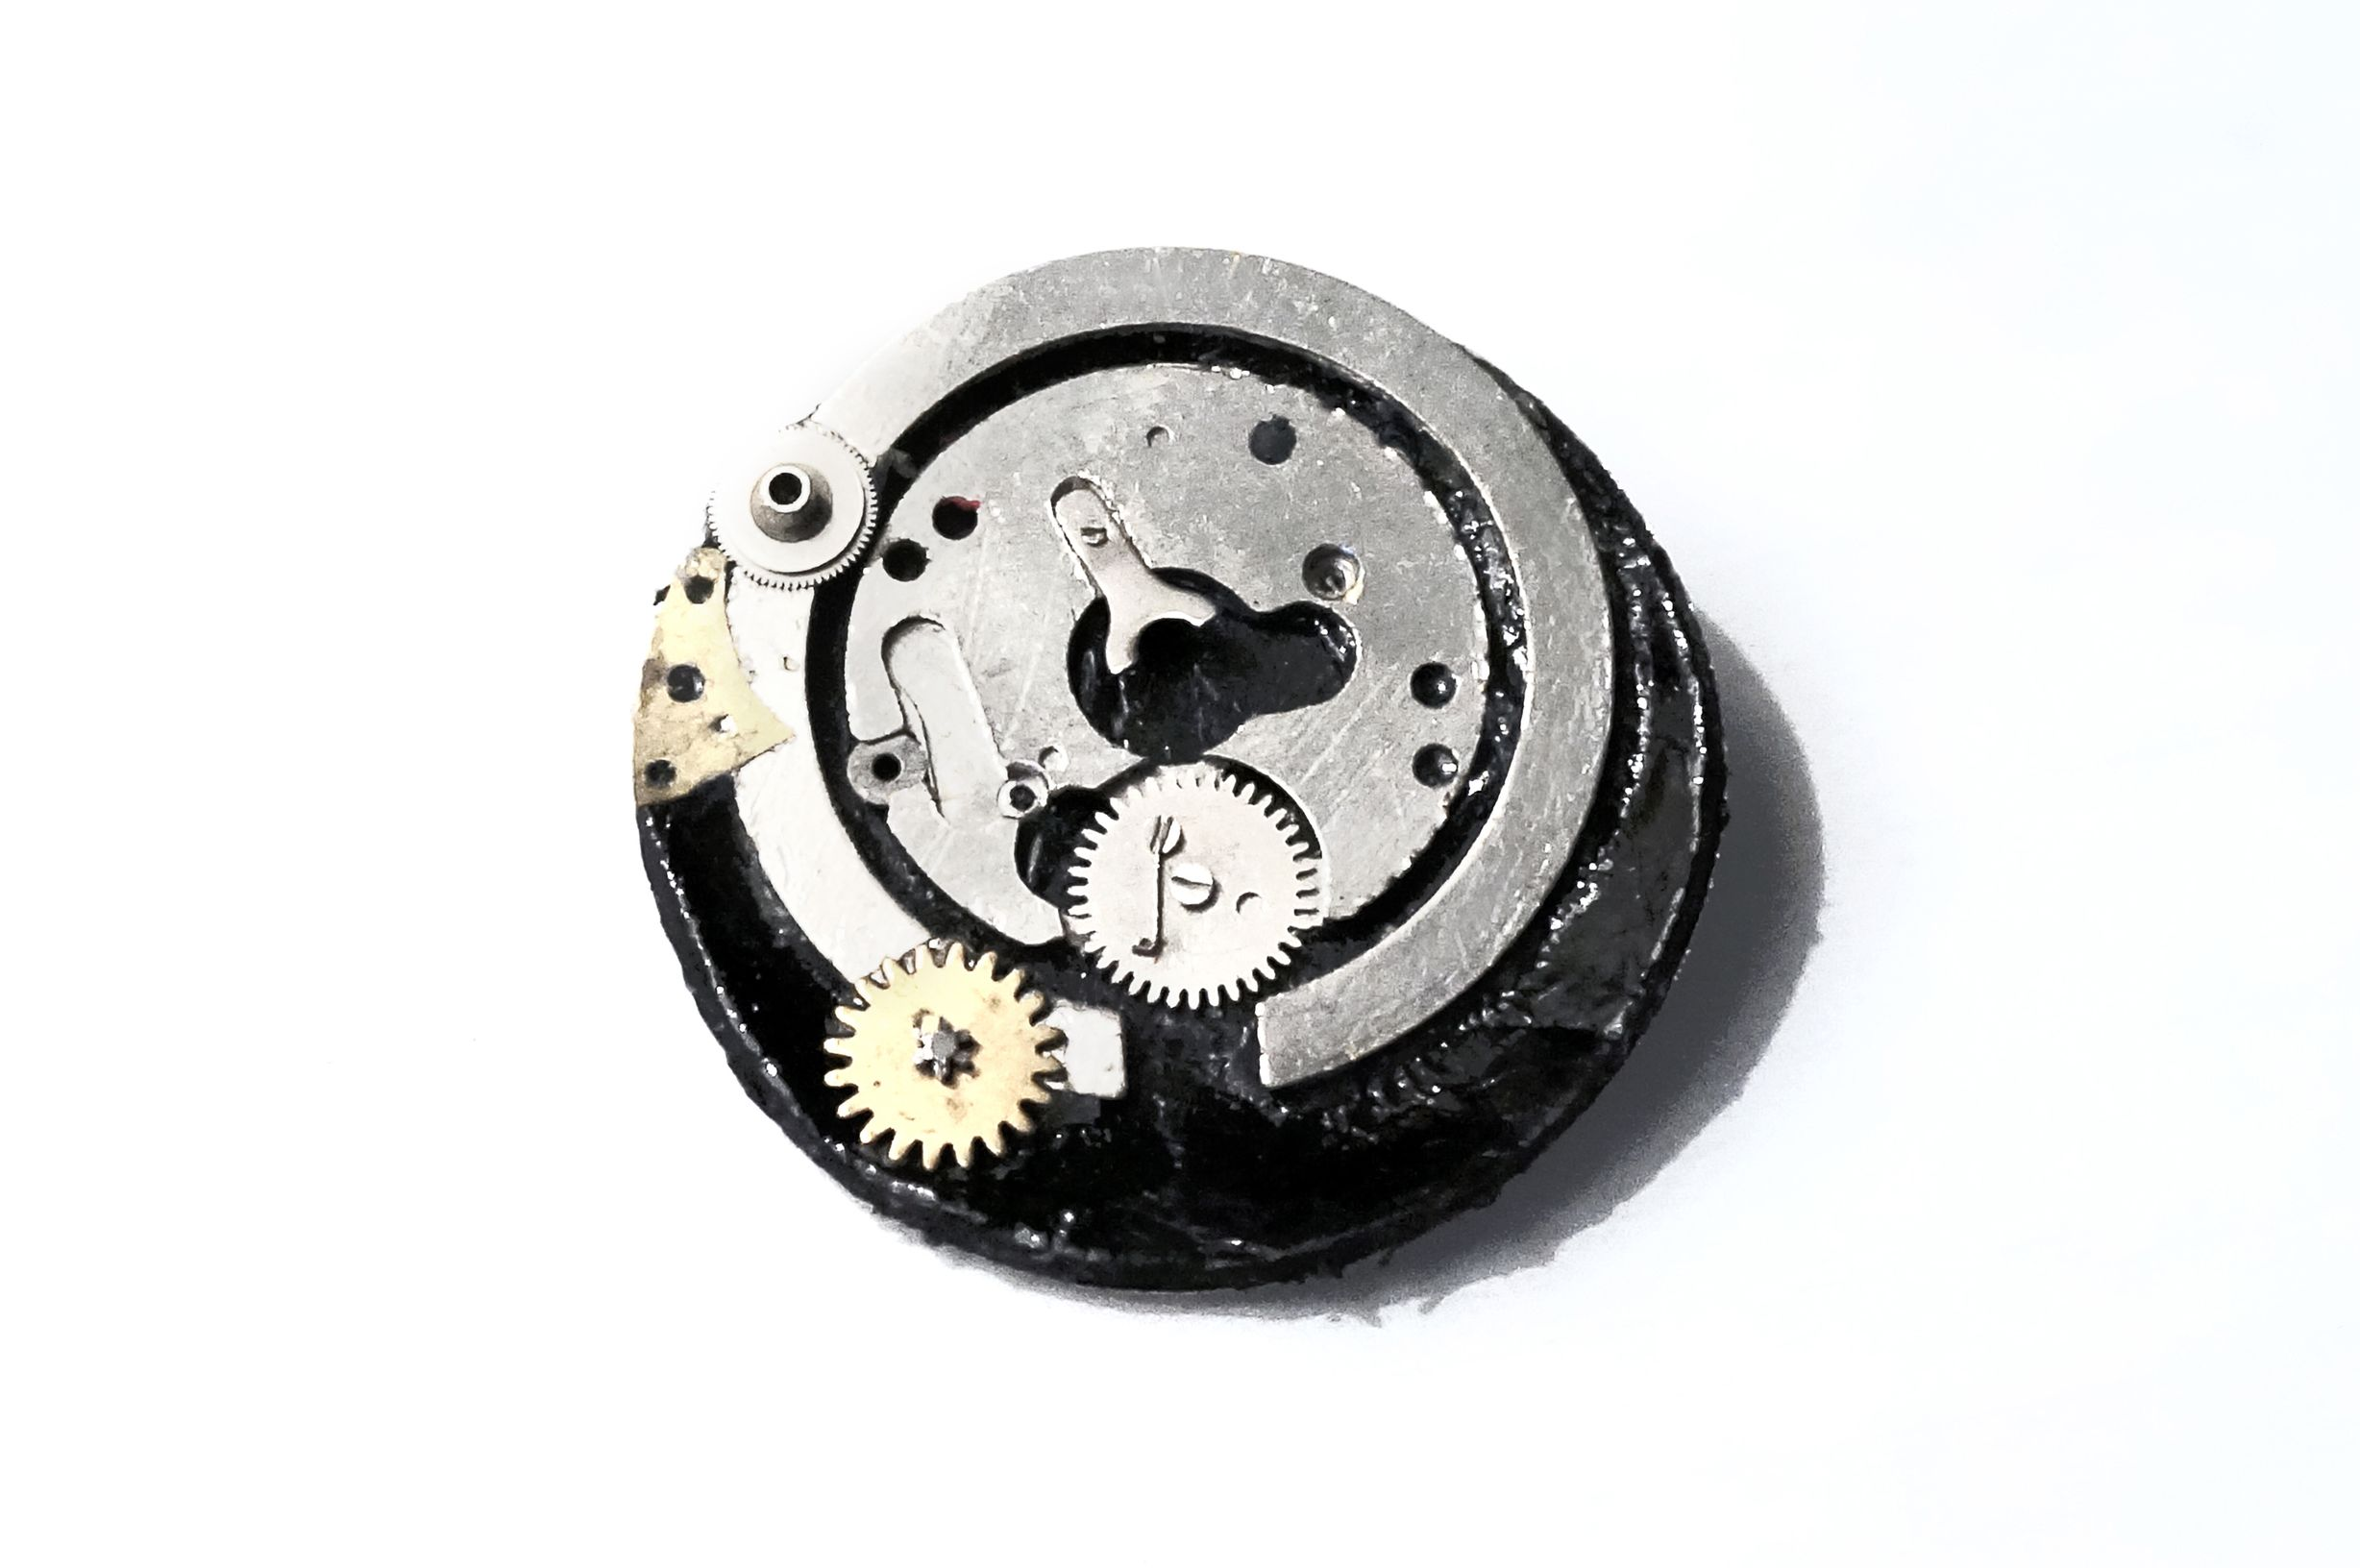 steampunk metal apocalyptic pin brooch